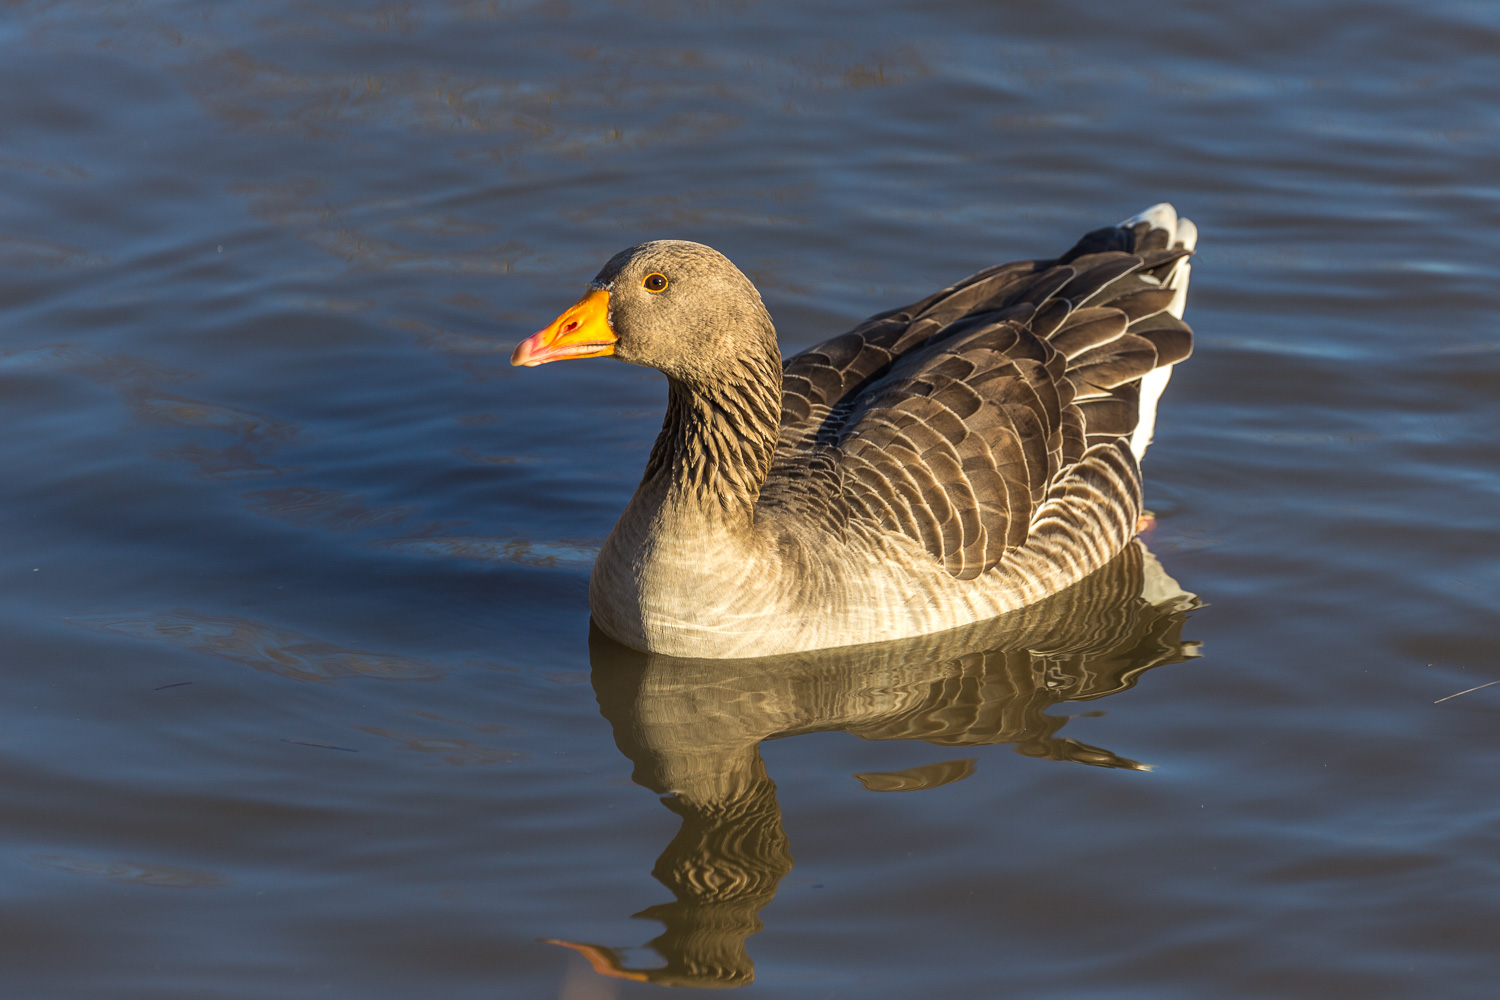 Waters Edge Country Park, greylag goose